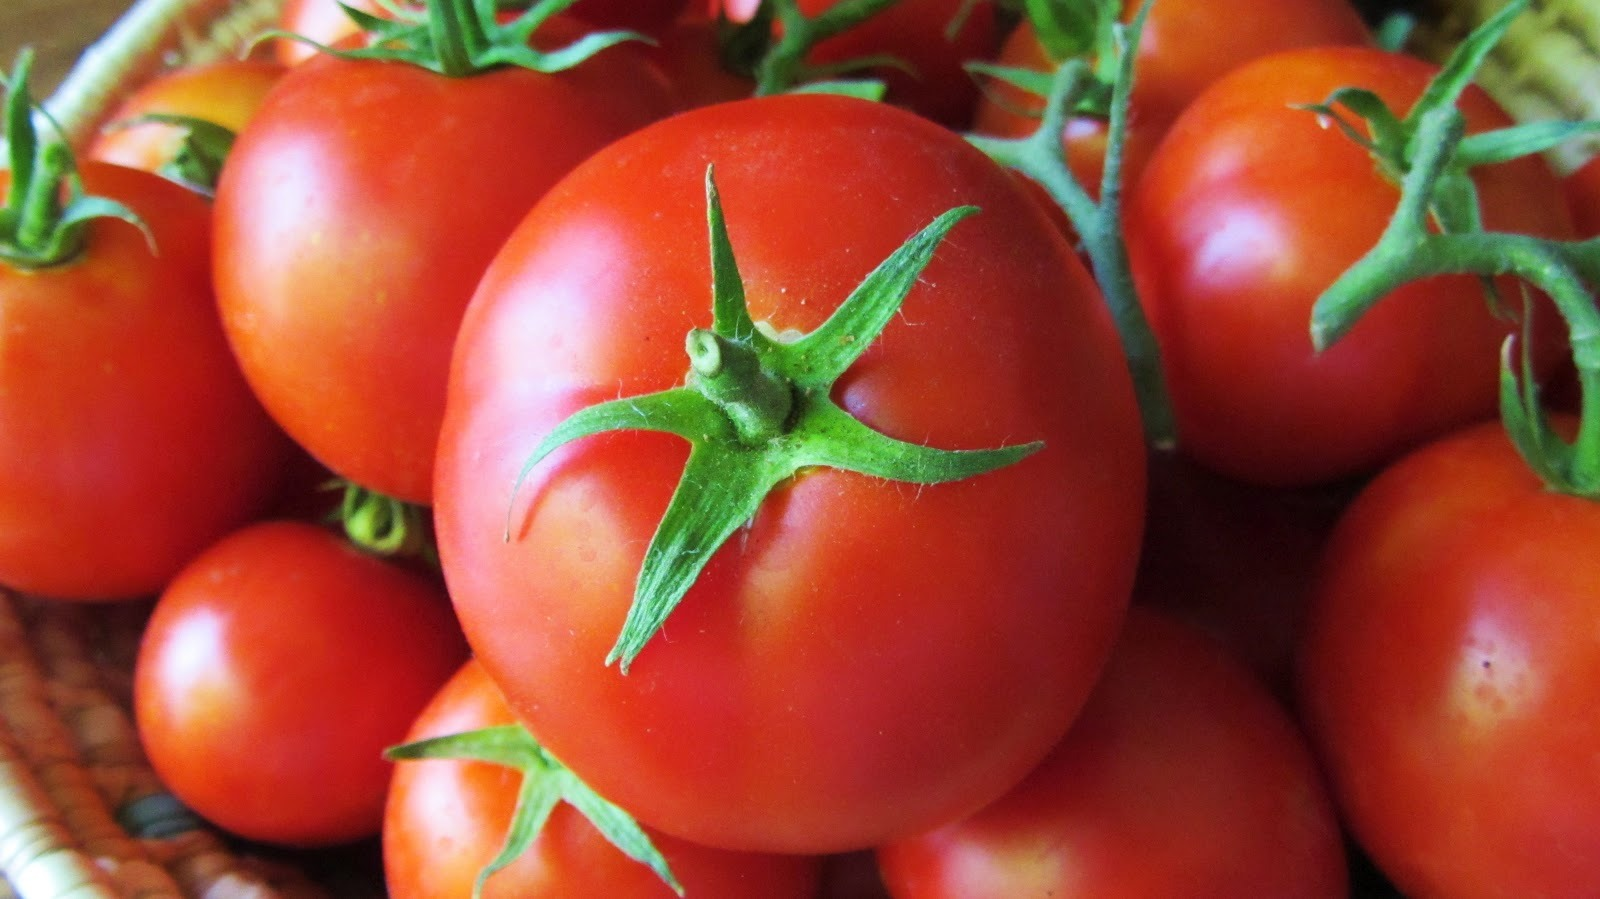 Tomato is wonderful in offering your skin bright texture. Take a tomato slice and use it on your facial skin. It will improve the glow of the skin.